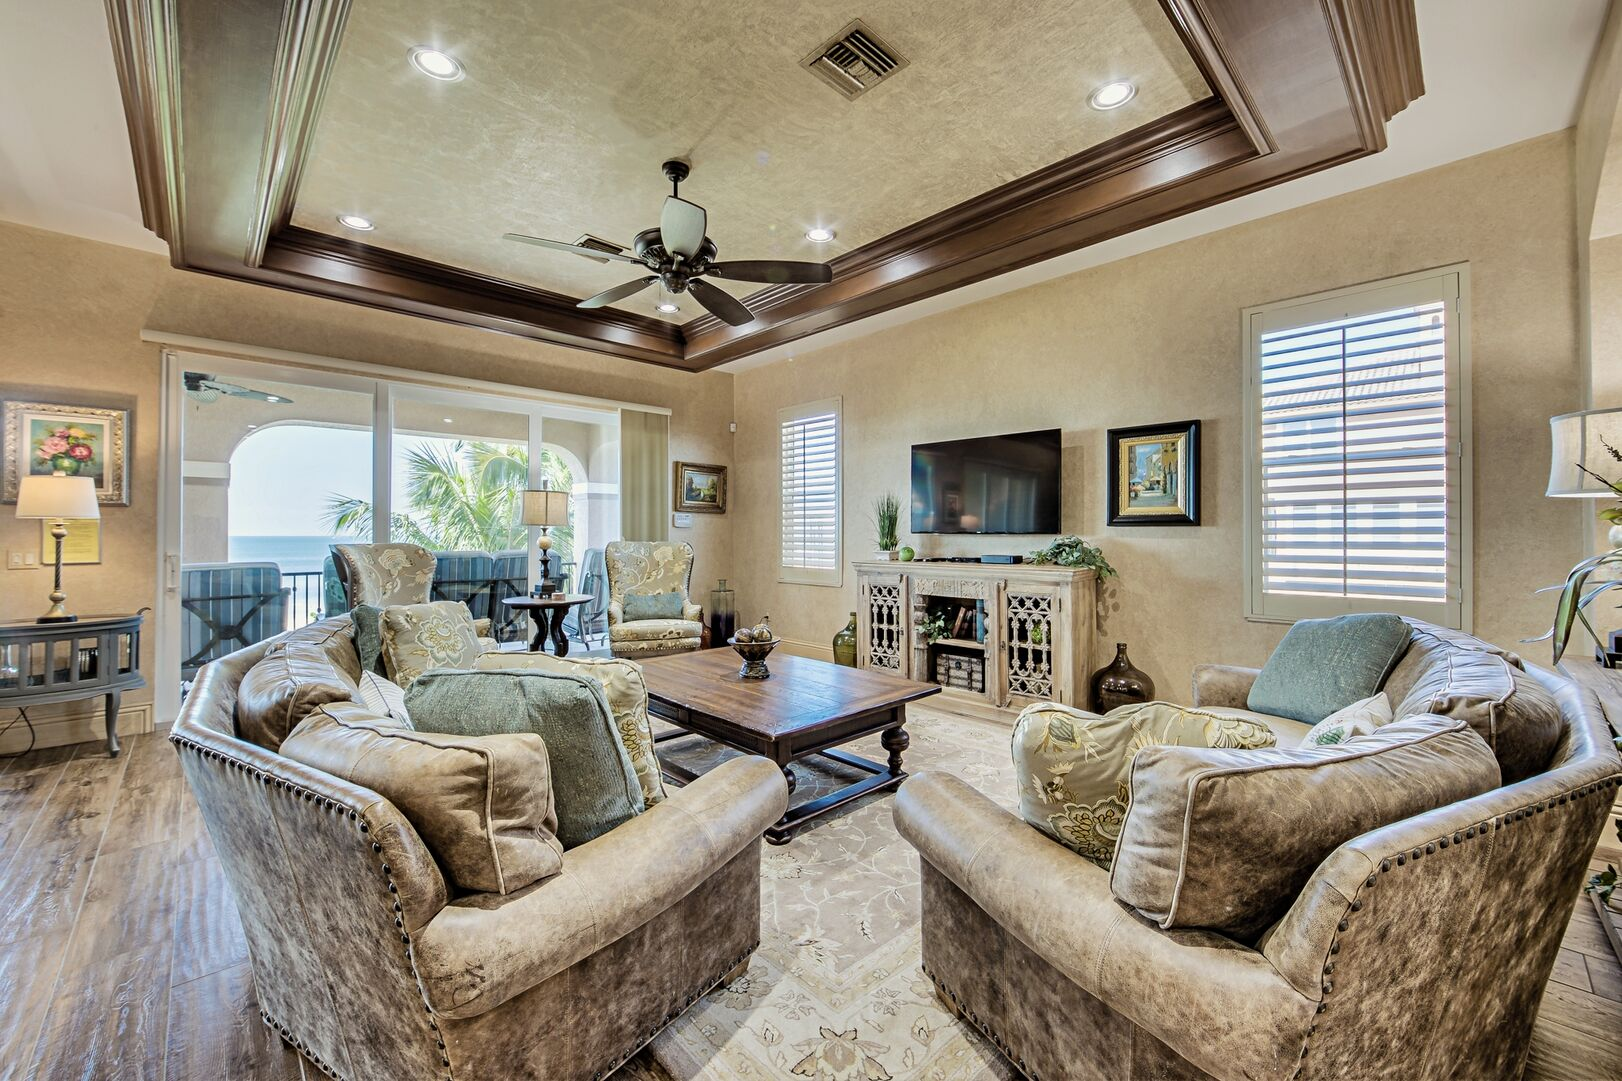 Sofas, Tables, TV, Ceiling Fan, and Sliding Doors to the Balcony with Gulf View.